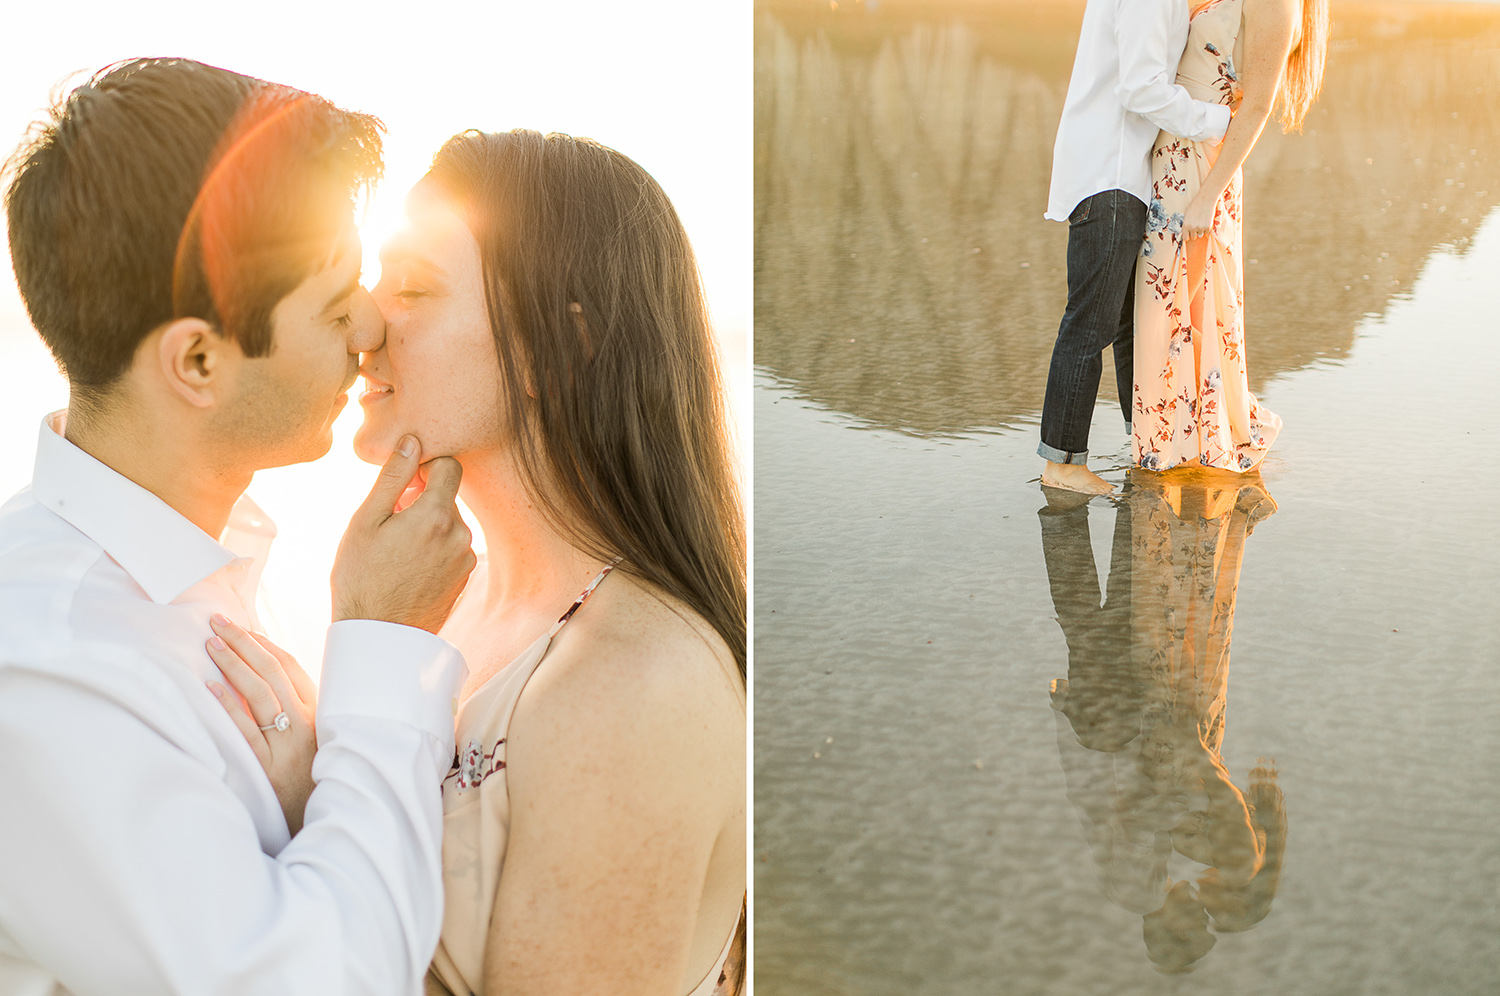 morro rock beach engagement kristyn villars photography